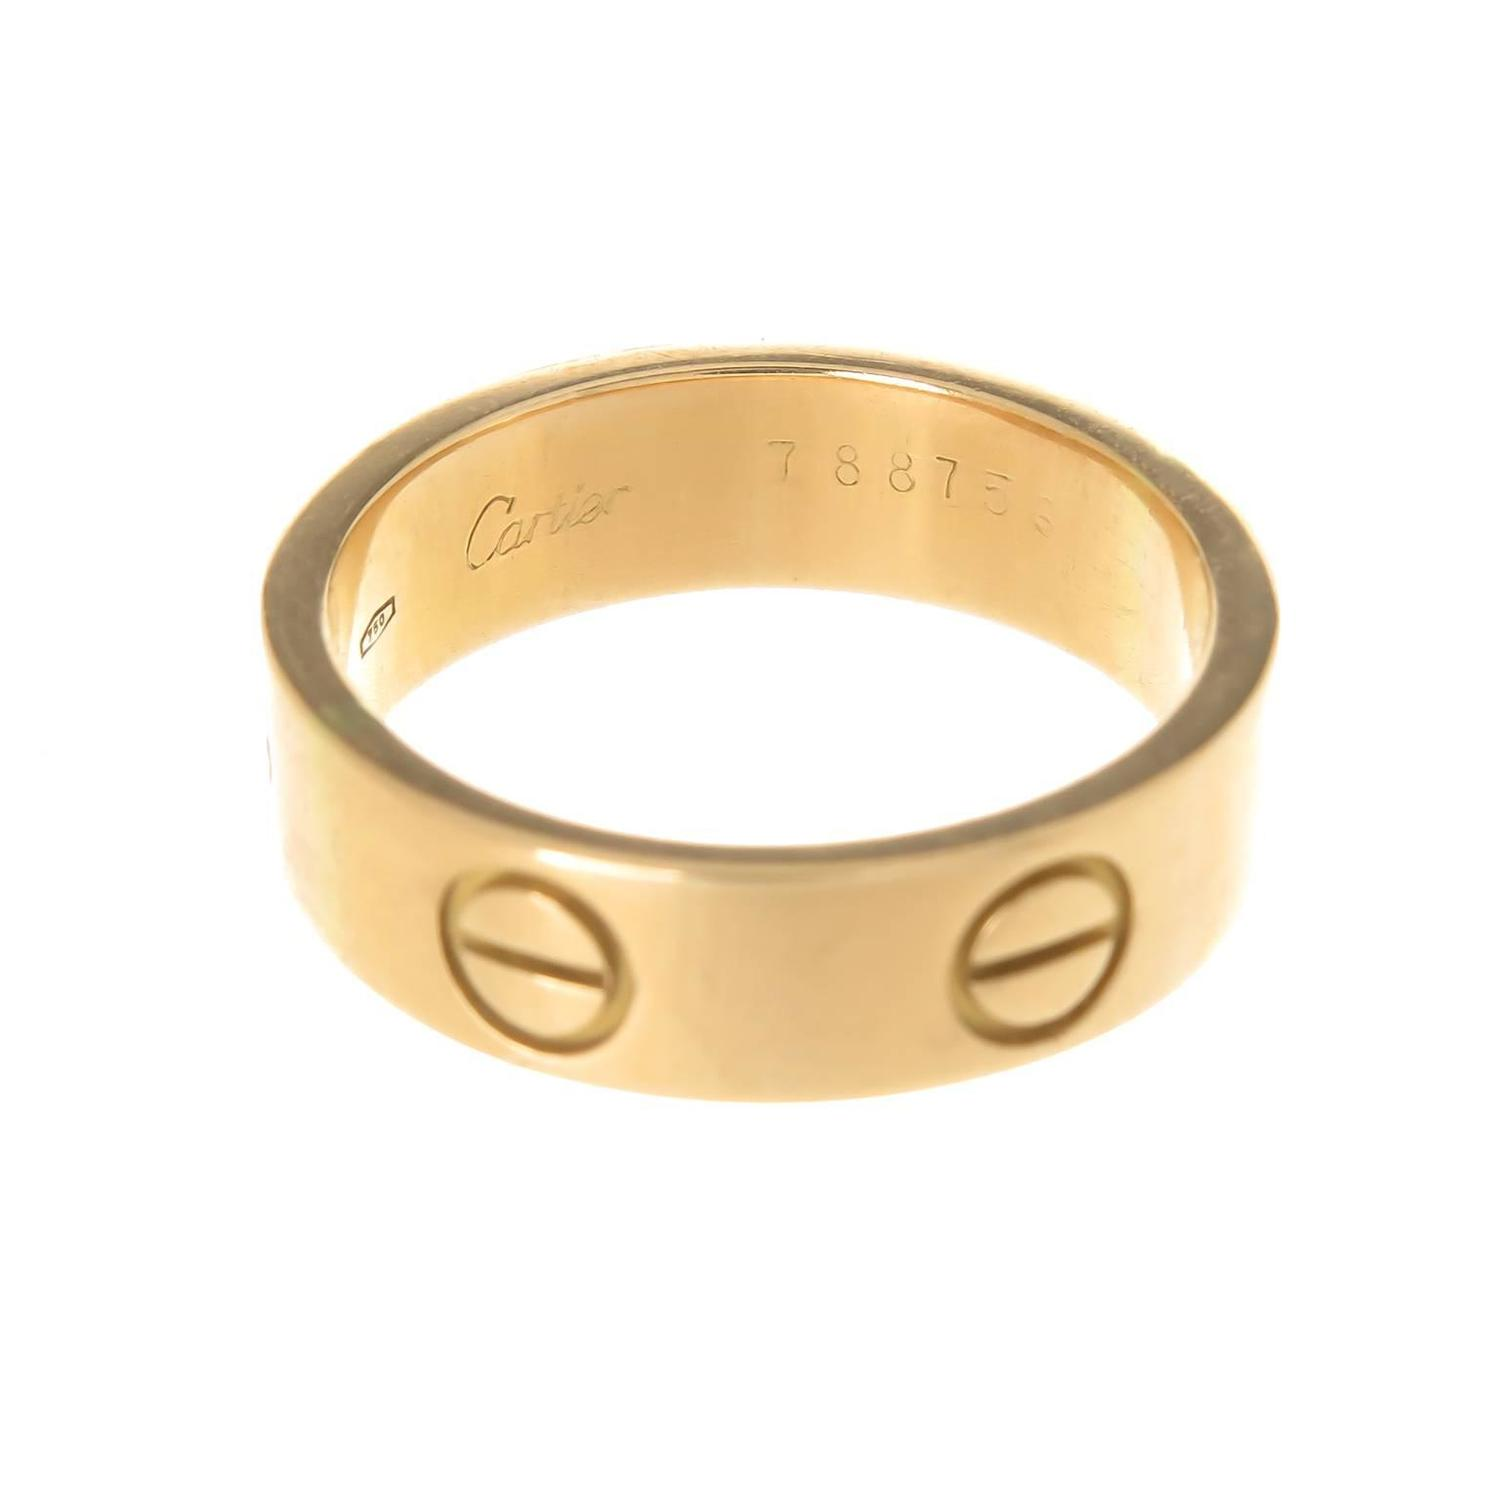 Cartier Gold Ring Price